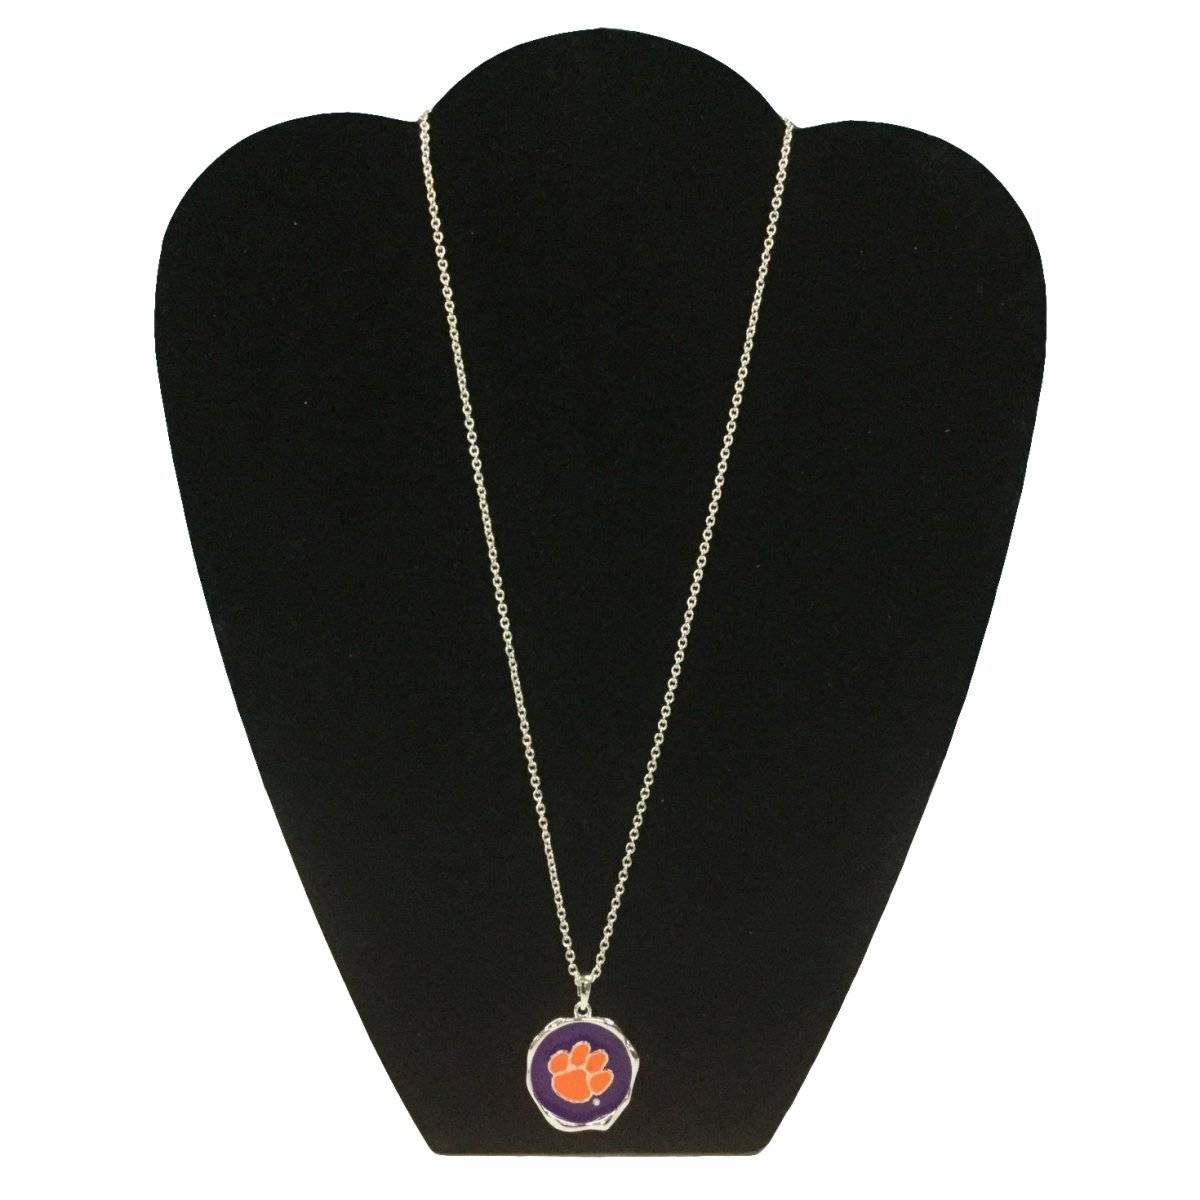 Nuria Pendant Necklace - Purple With Orange Paw - Mr. Knickerbocker